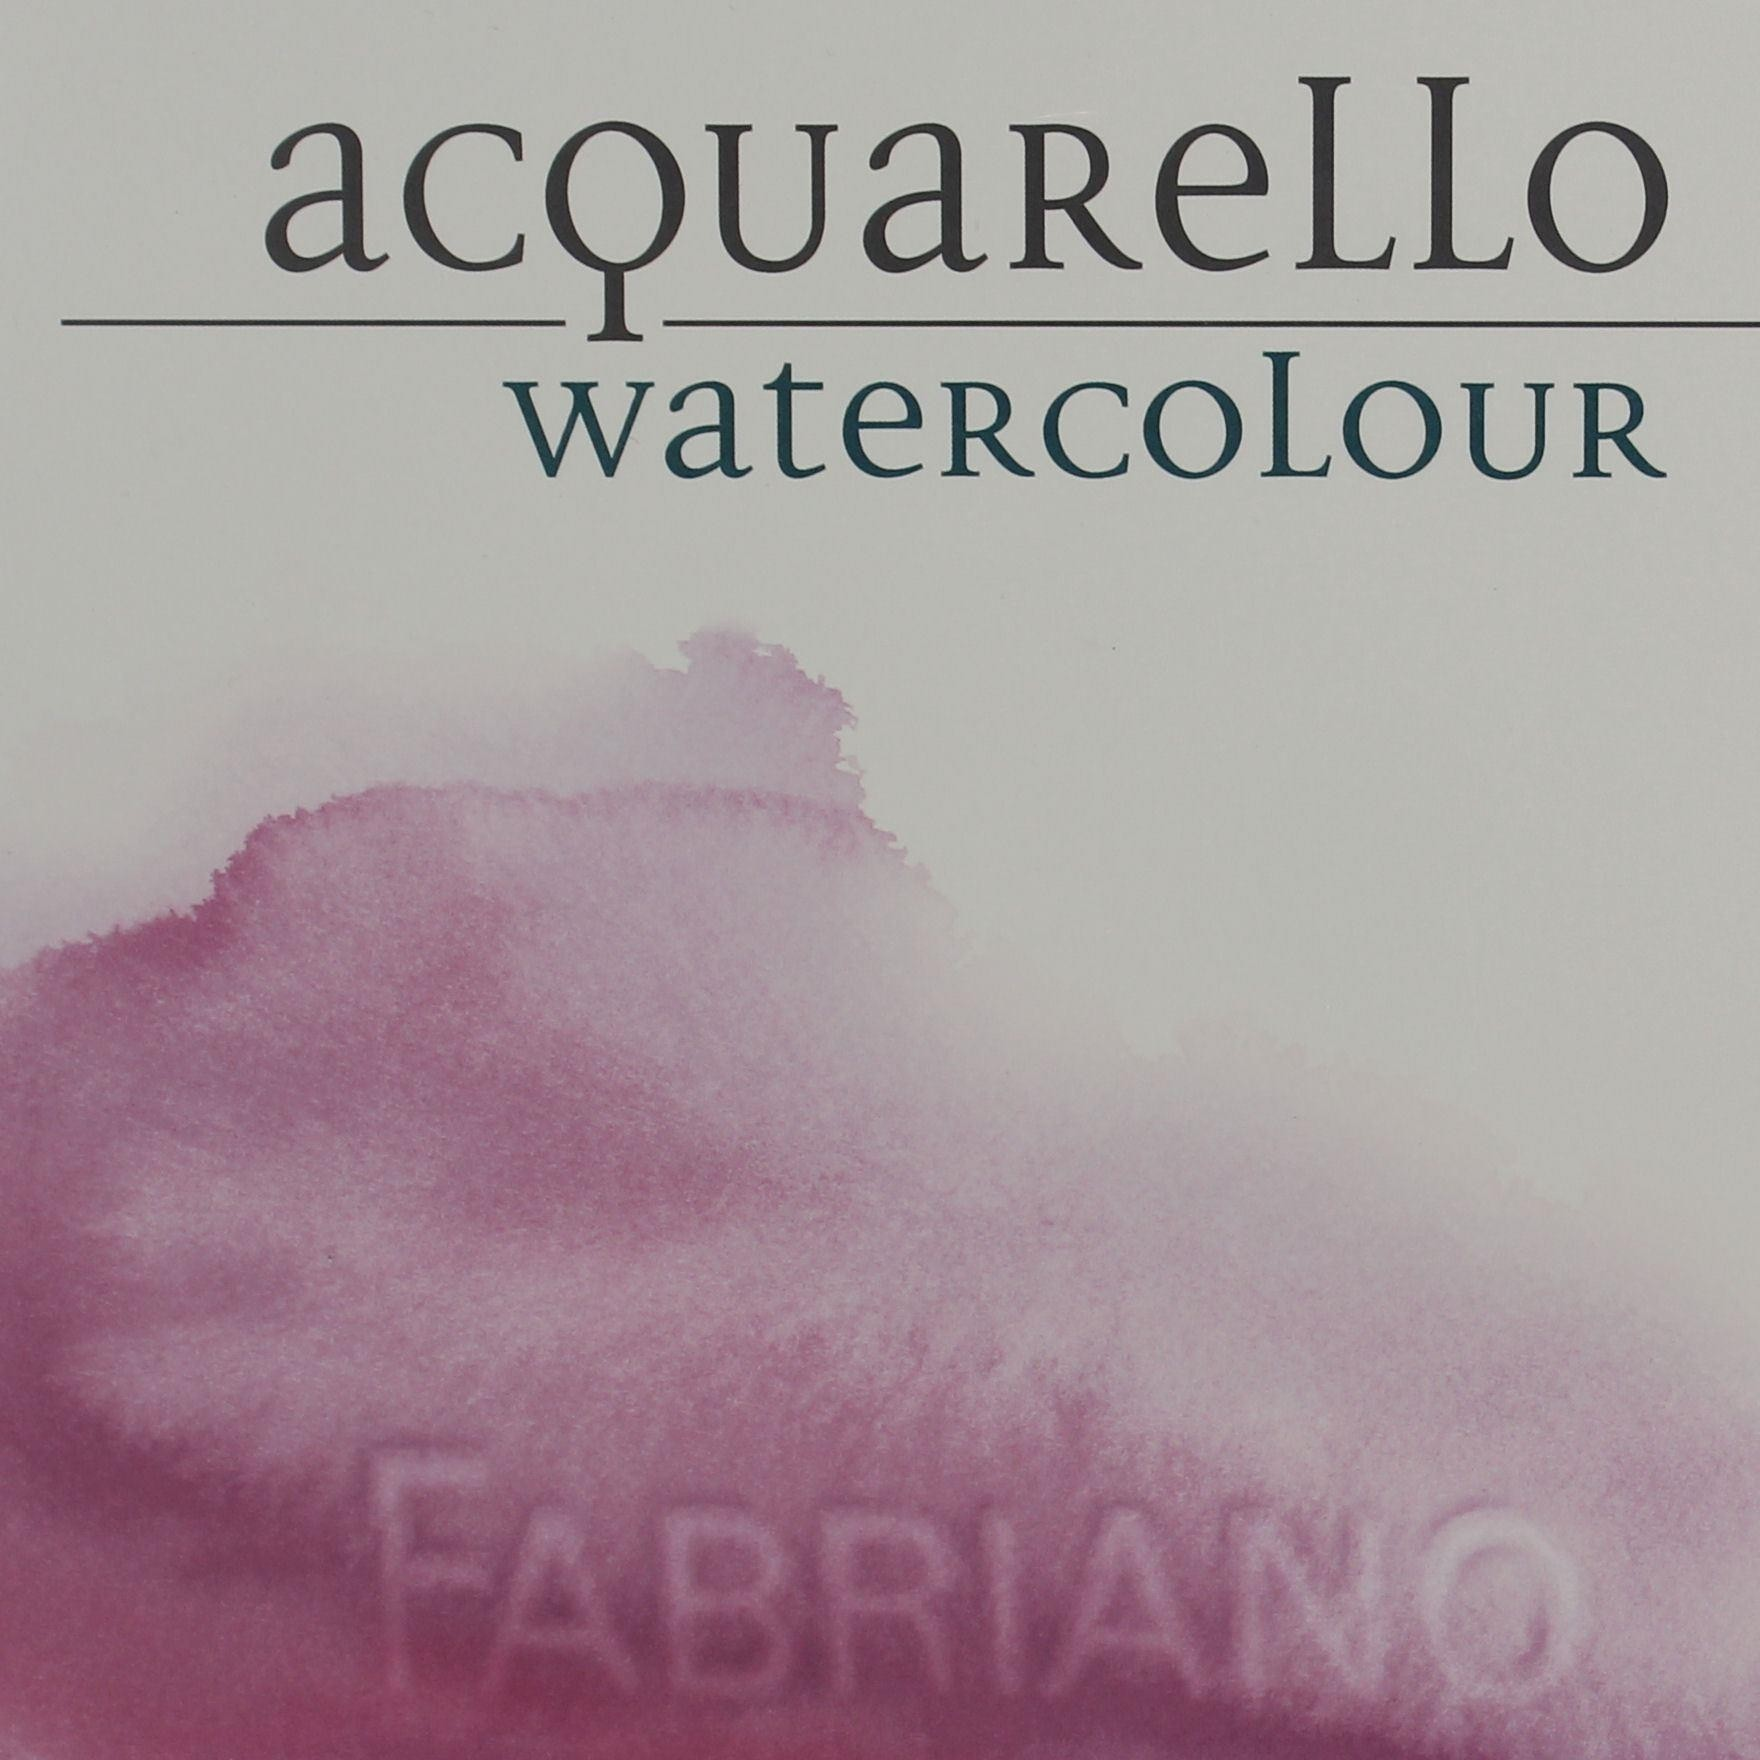 Fabriano Artistico Watercolour Paper 2 Sheets of 640gsm (300lb) Hot Pressed